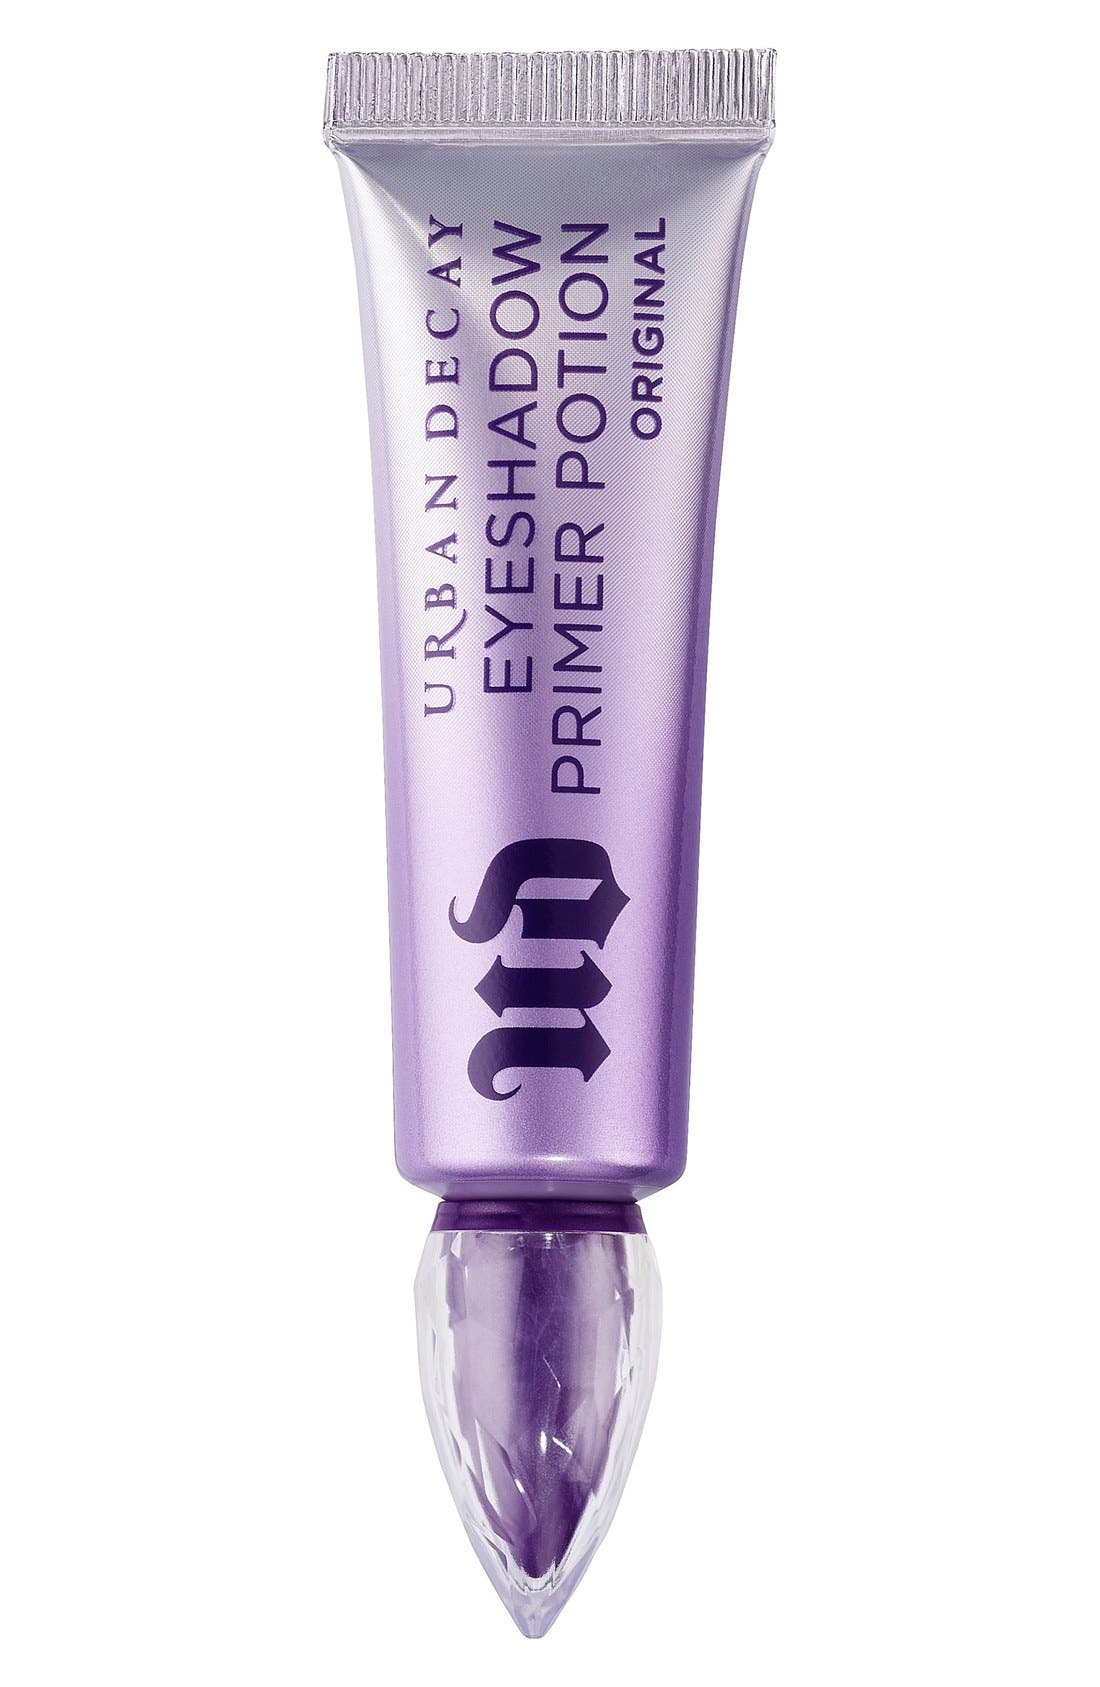 Original Eyeshadow Primer Potion,                             Alternate thumbnail 6, color,                             NO COLOR